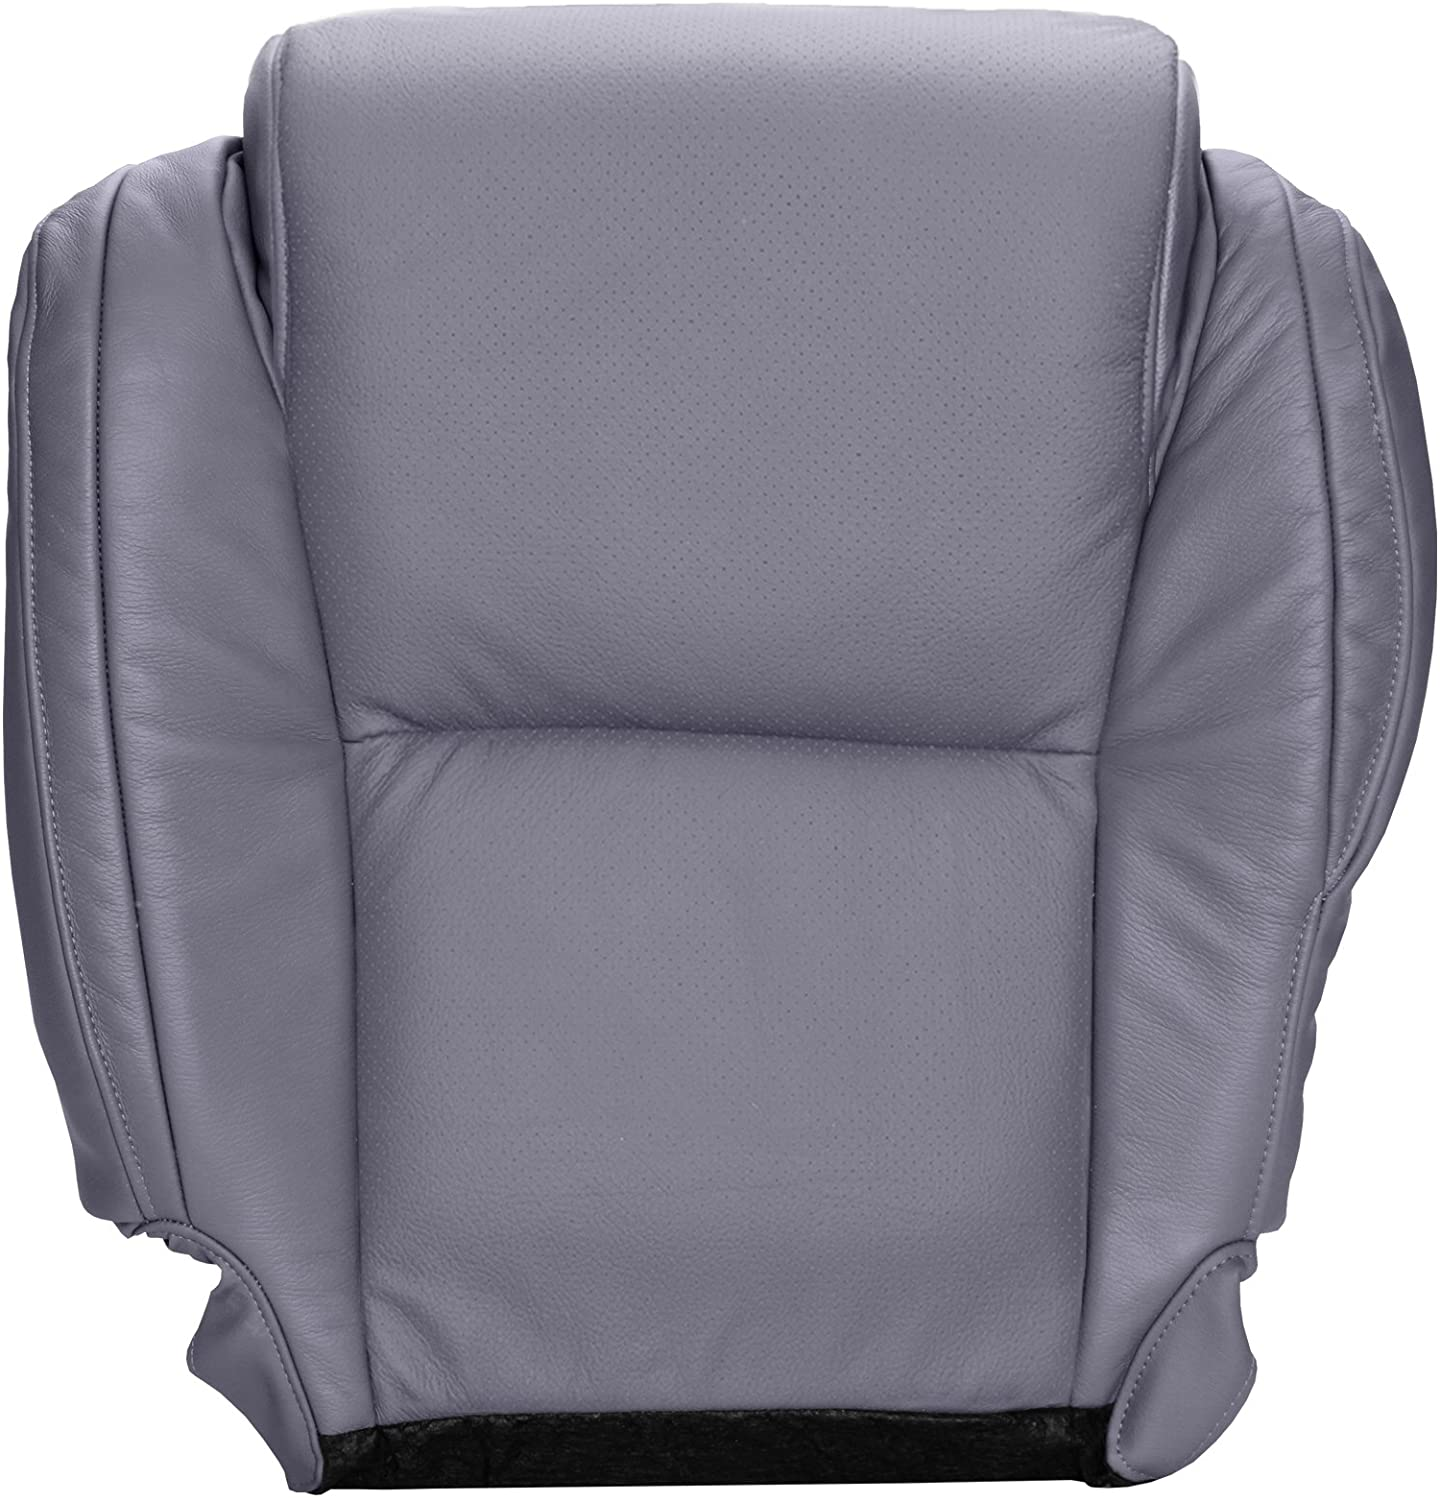 The Seat Shop Driver Bottom Perforated Replacement Seat Cover - Graphite (Gray) Leather with Extra Seam (Compatible with 2007-2013 Tundra Platinum and 2008-2014 Sequoia Platinum)